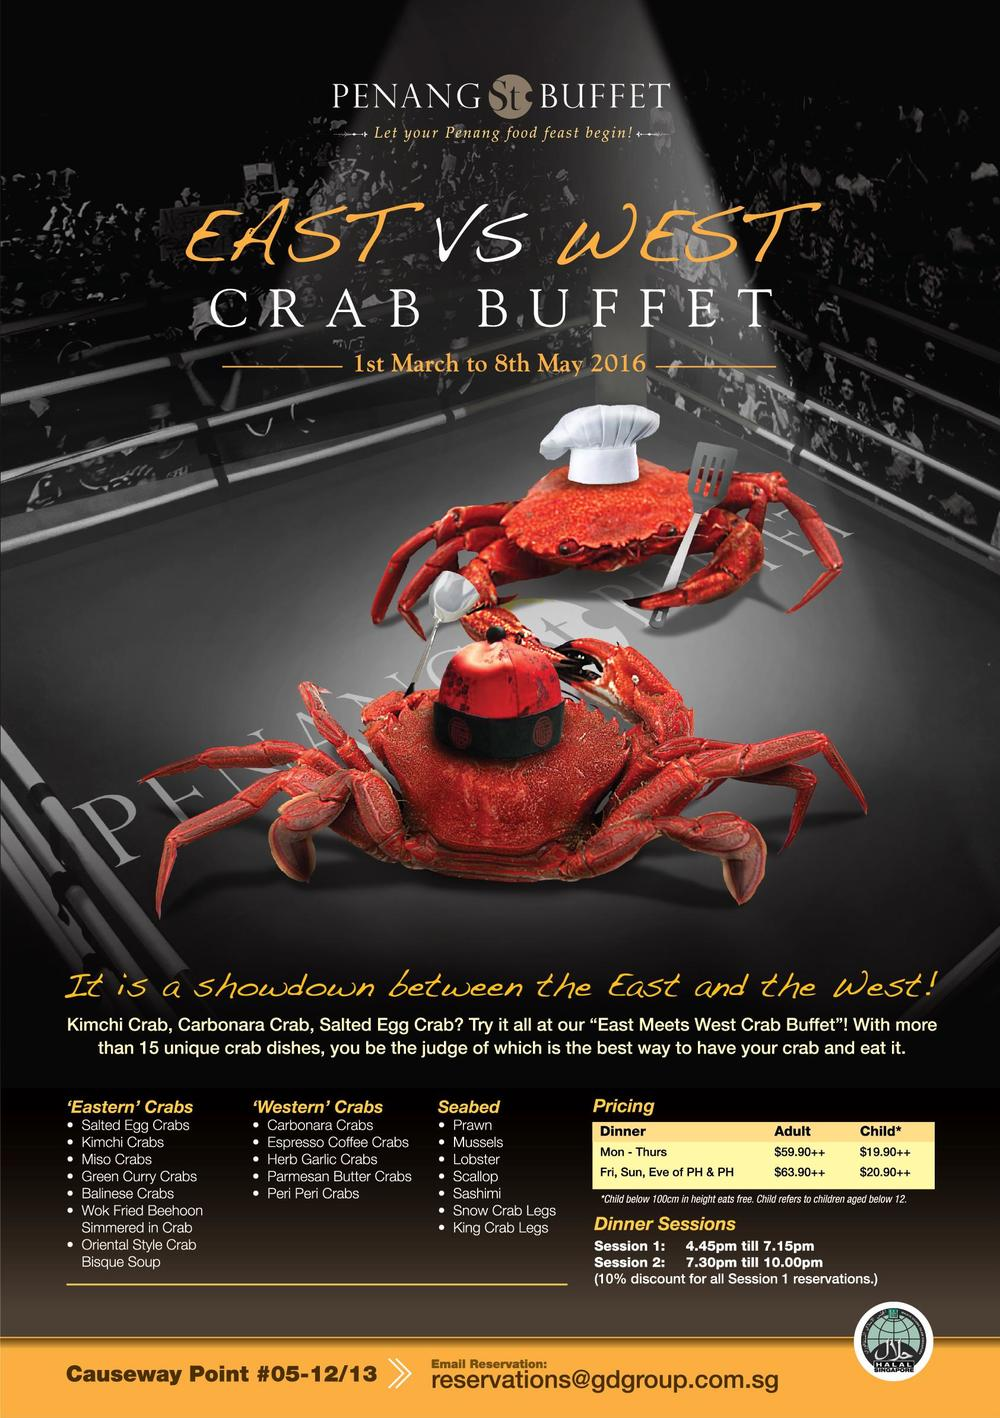 Penang St Bufet East vs West Crab Buffet